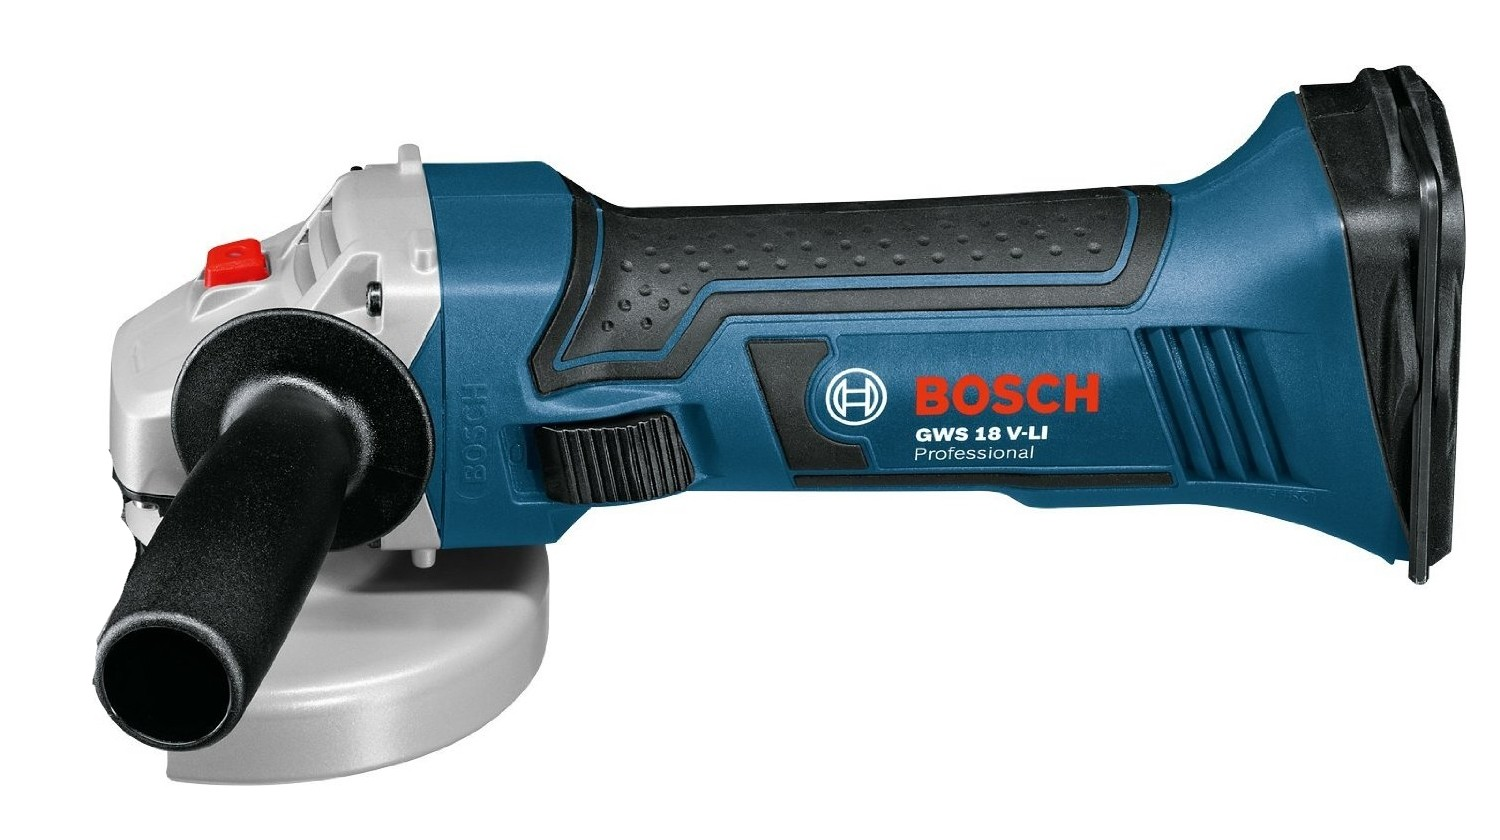 bosch cordless angle grinder gws 18 v li powertool world. Black Bedroom Furniture Sets. Home Design Ideas